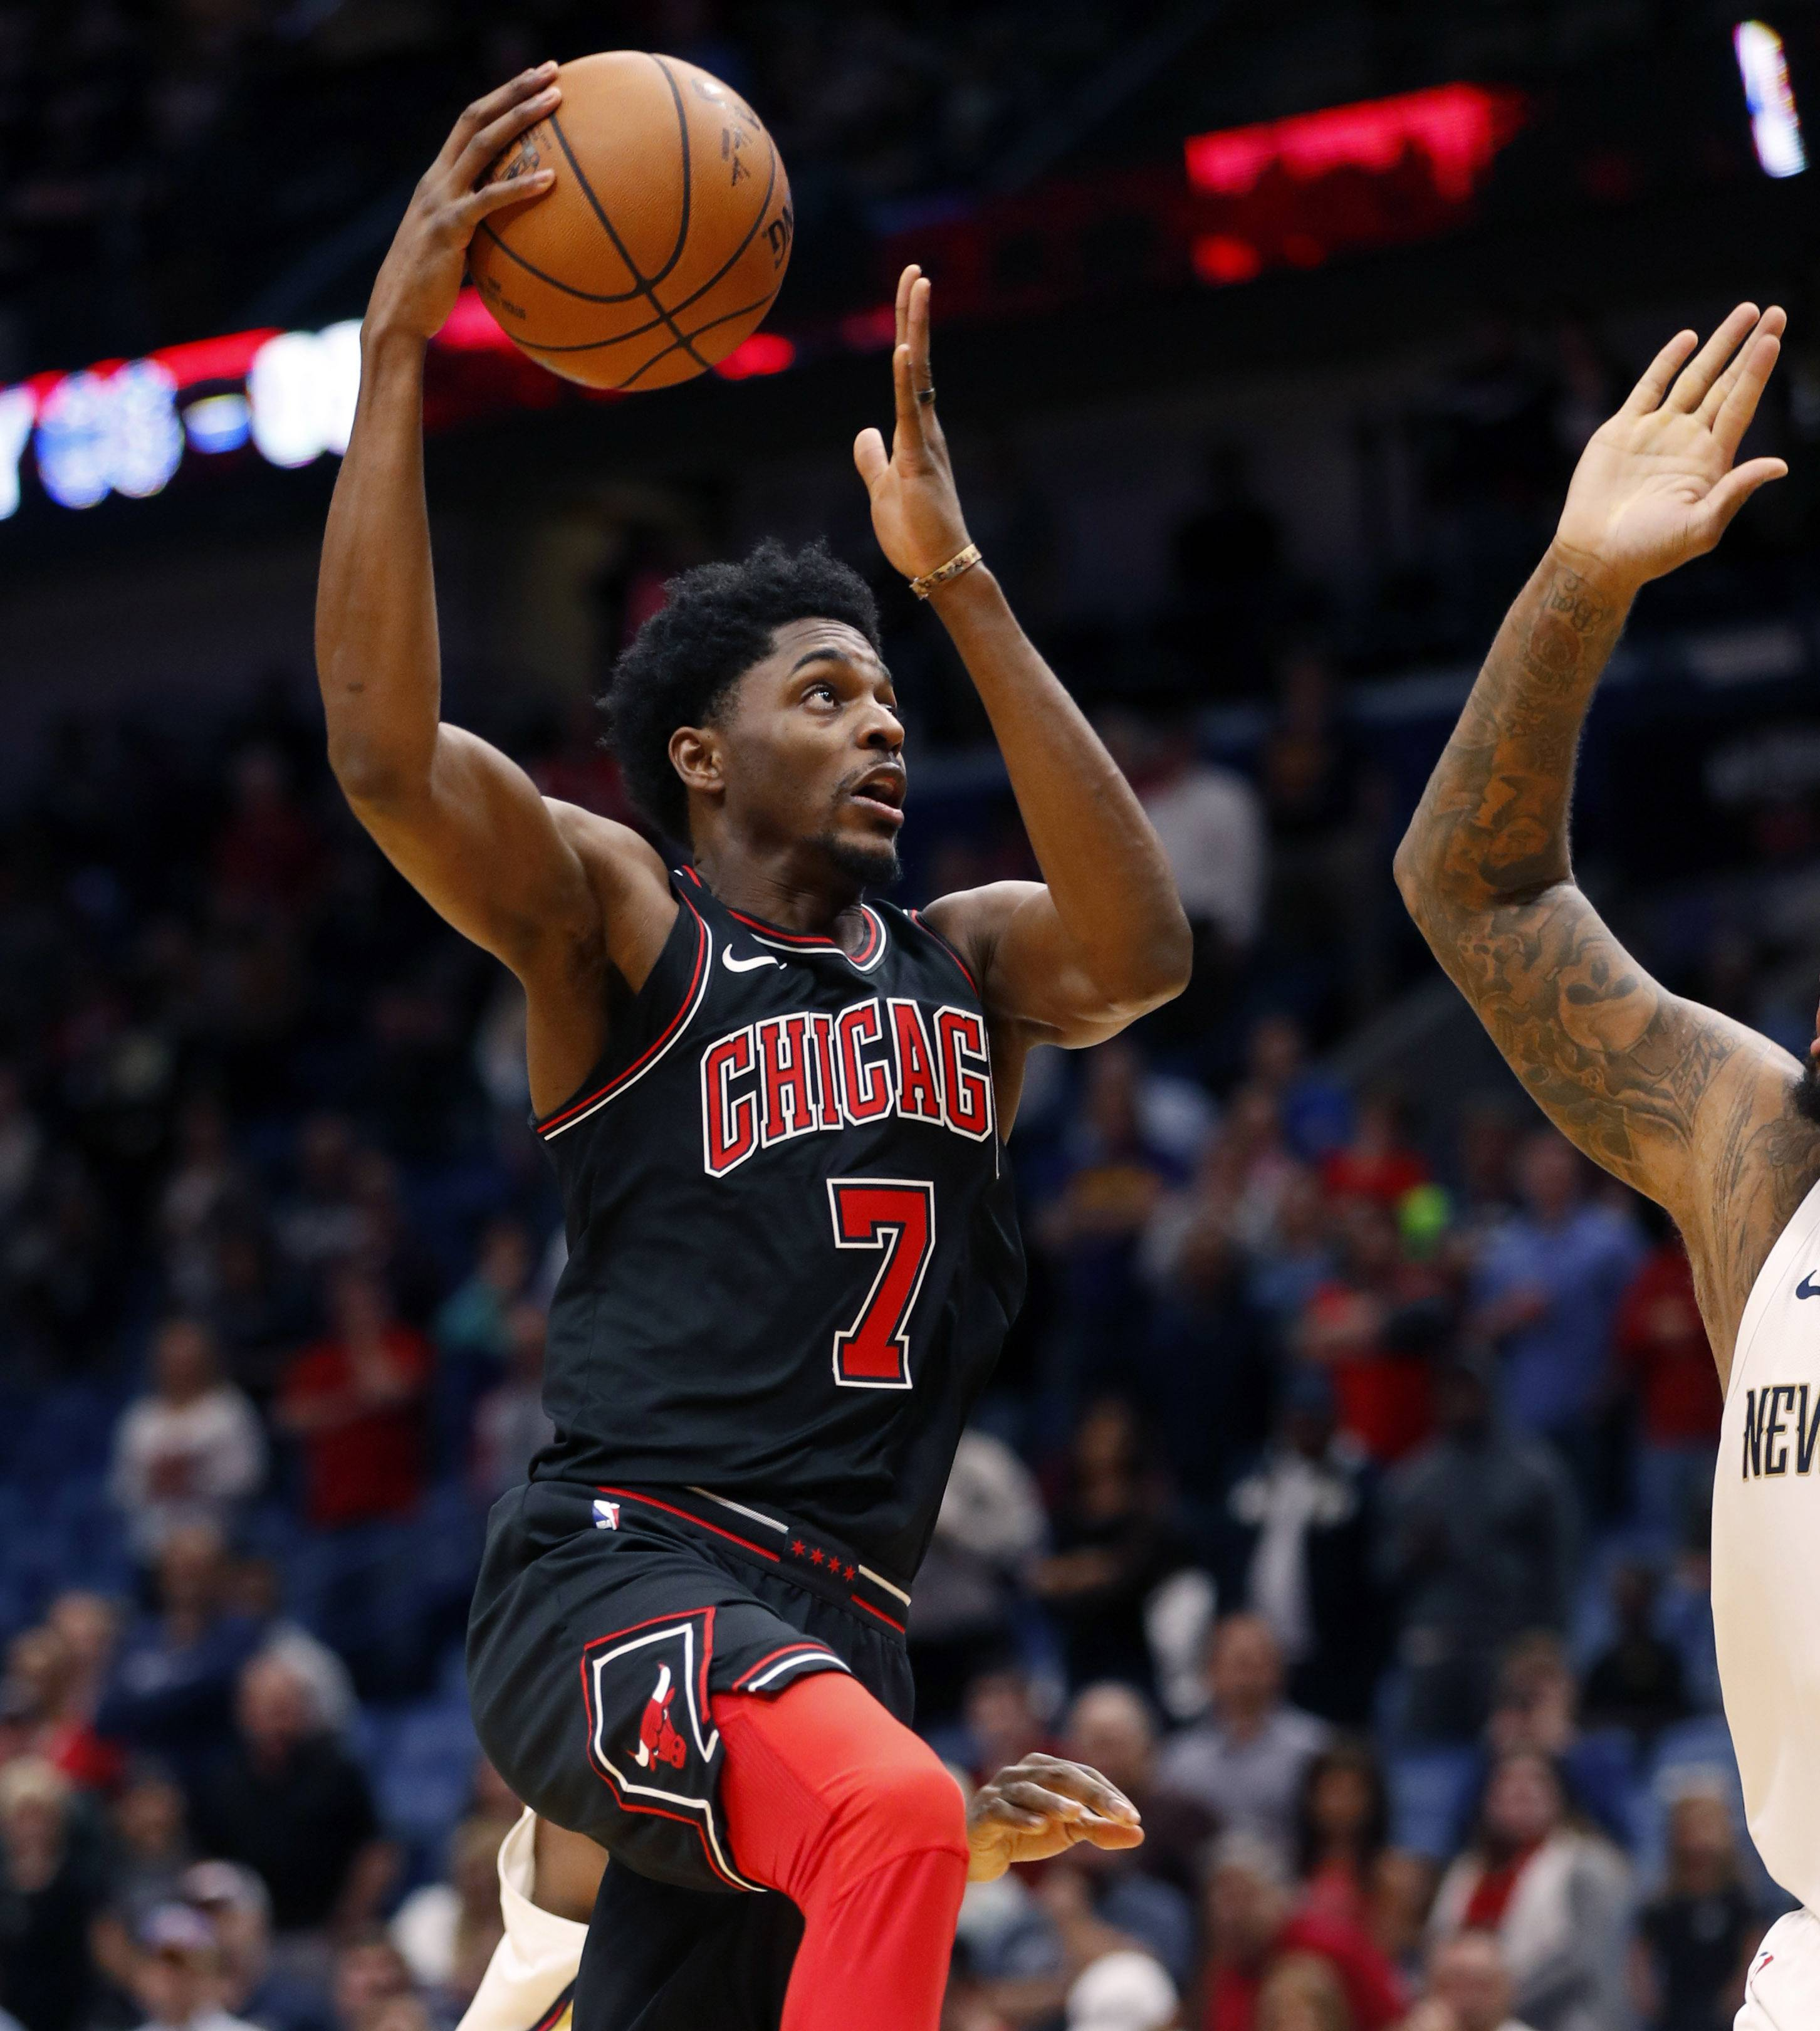 Bulls continue to tinker with Lopez, Holiday usage